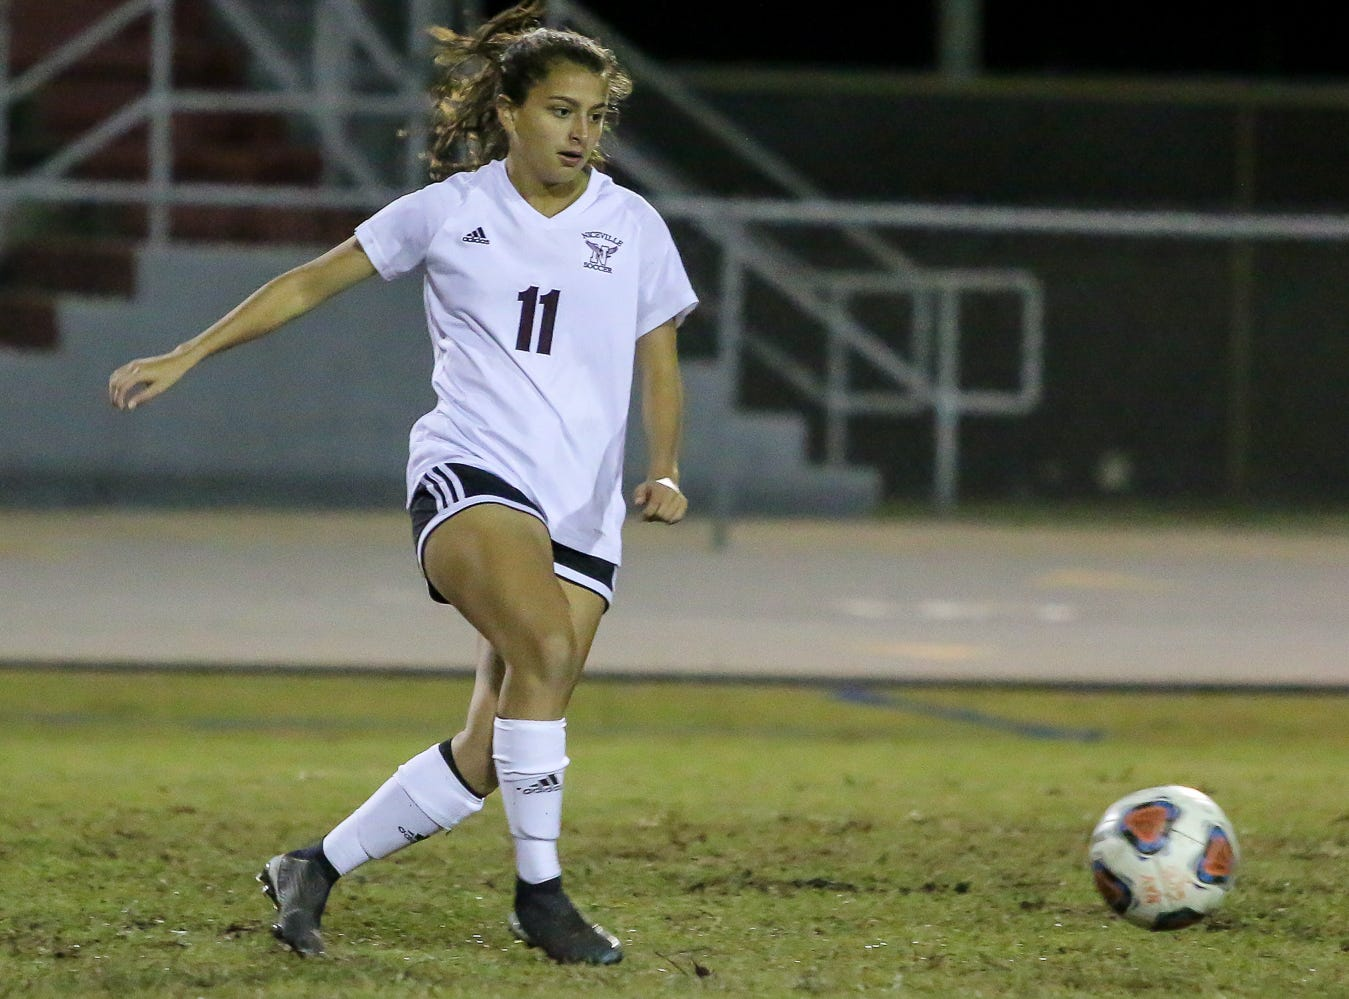 Niceville's Kayla Fernandez (11) passes the ball against Navarre in a District 1-4A showdown of unbeaten teams at Navarre High School on Tuesday, December 4, 2018. The game ended in a 1-1 tie.